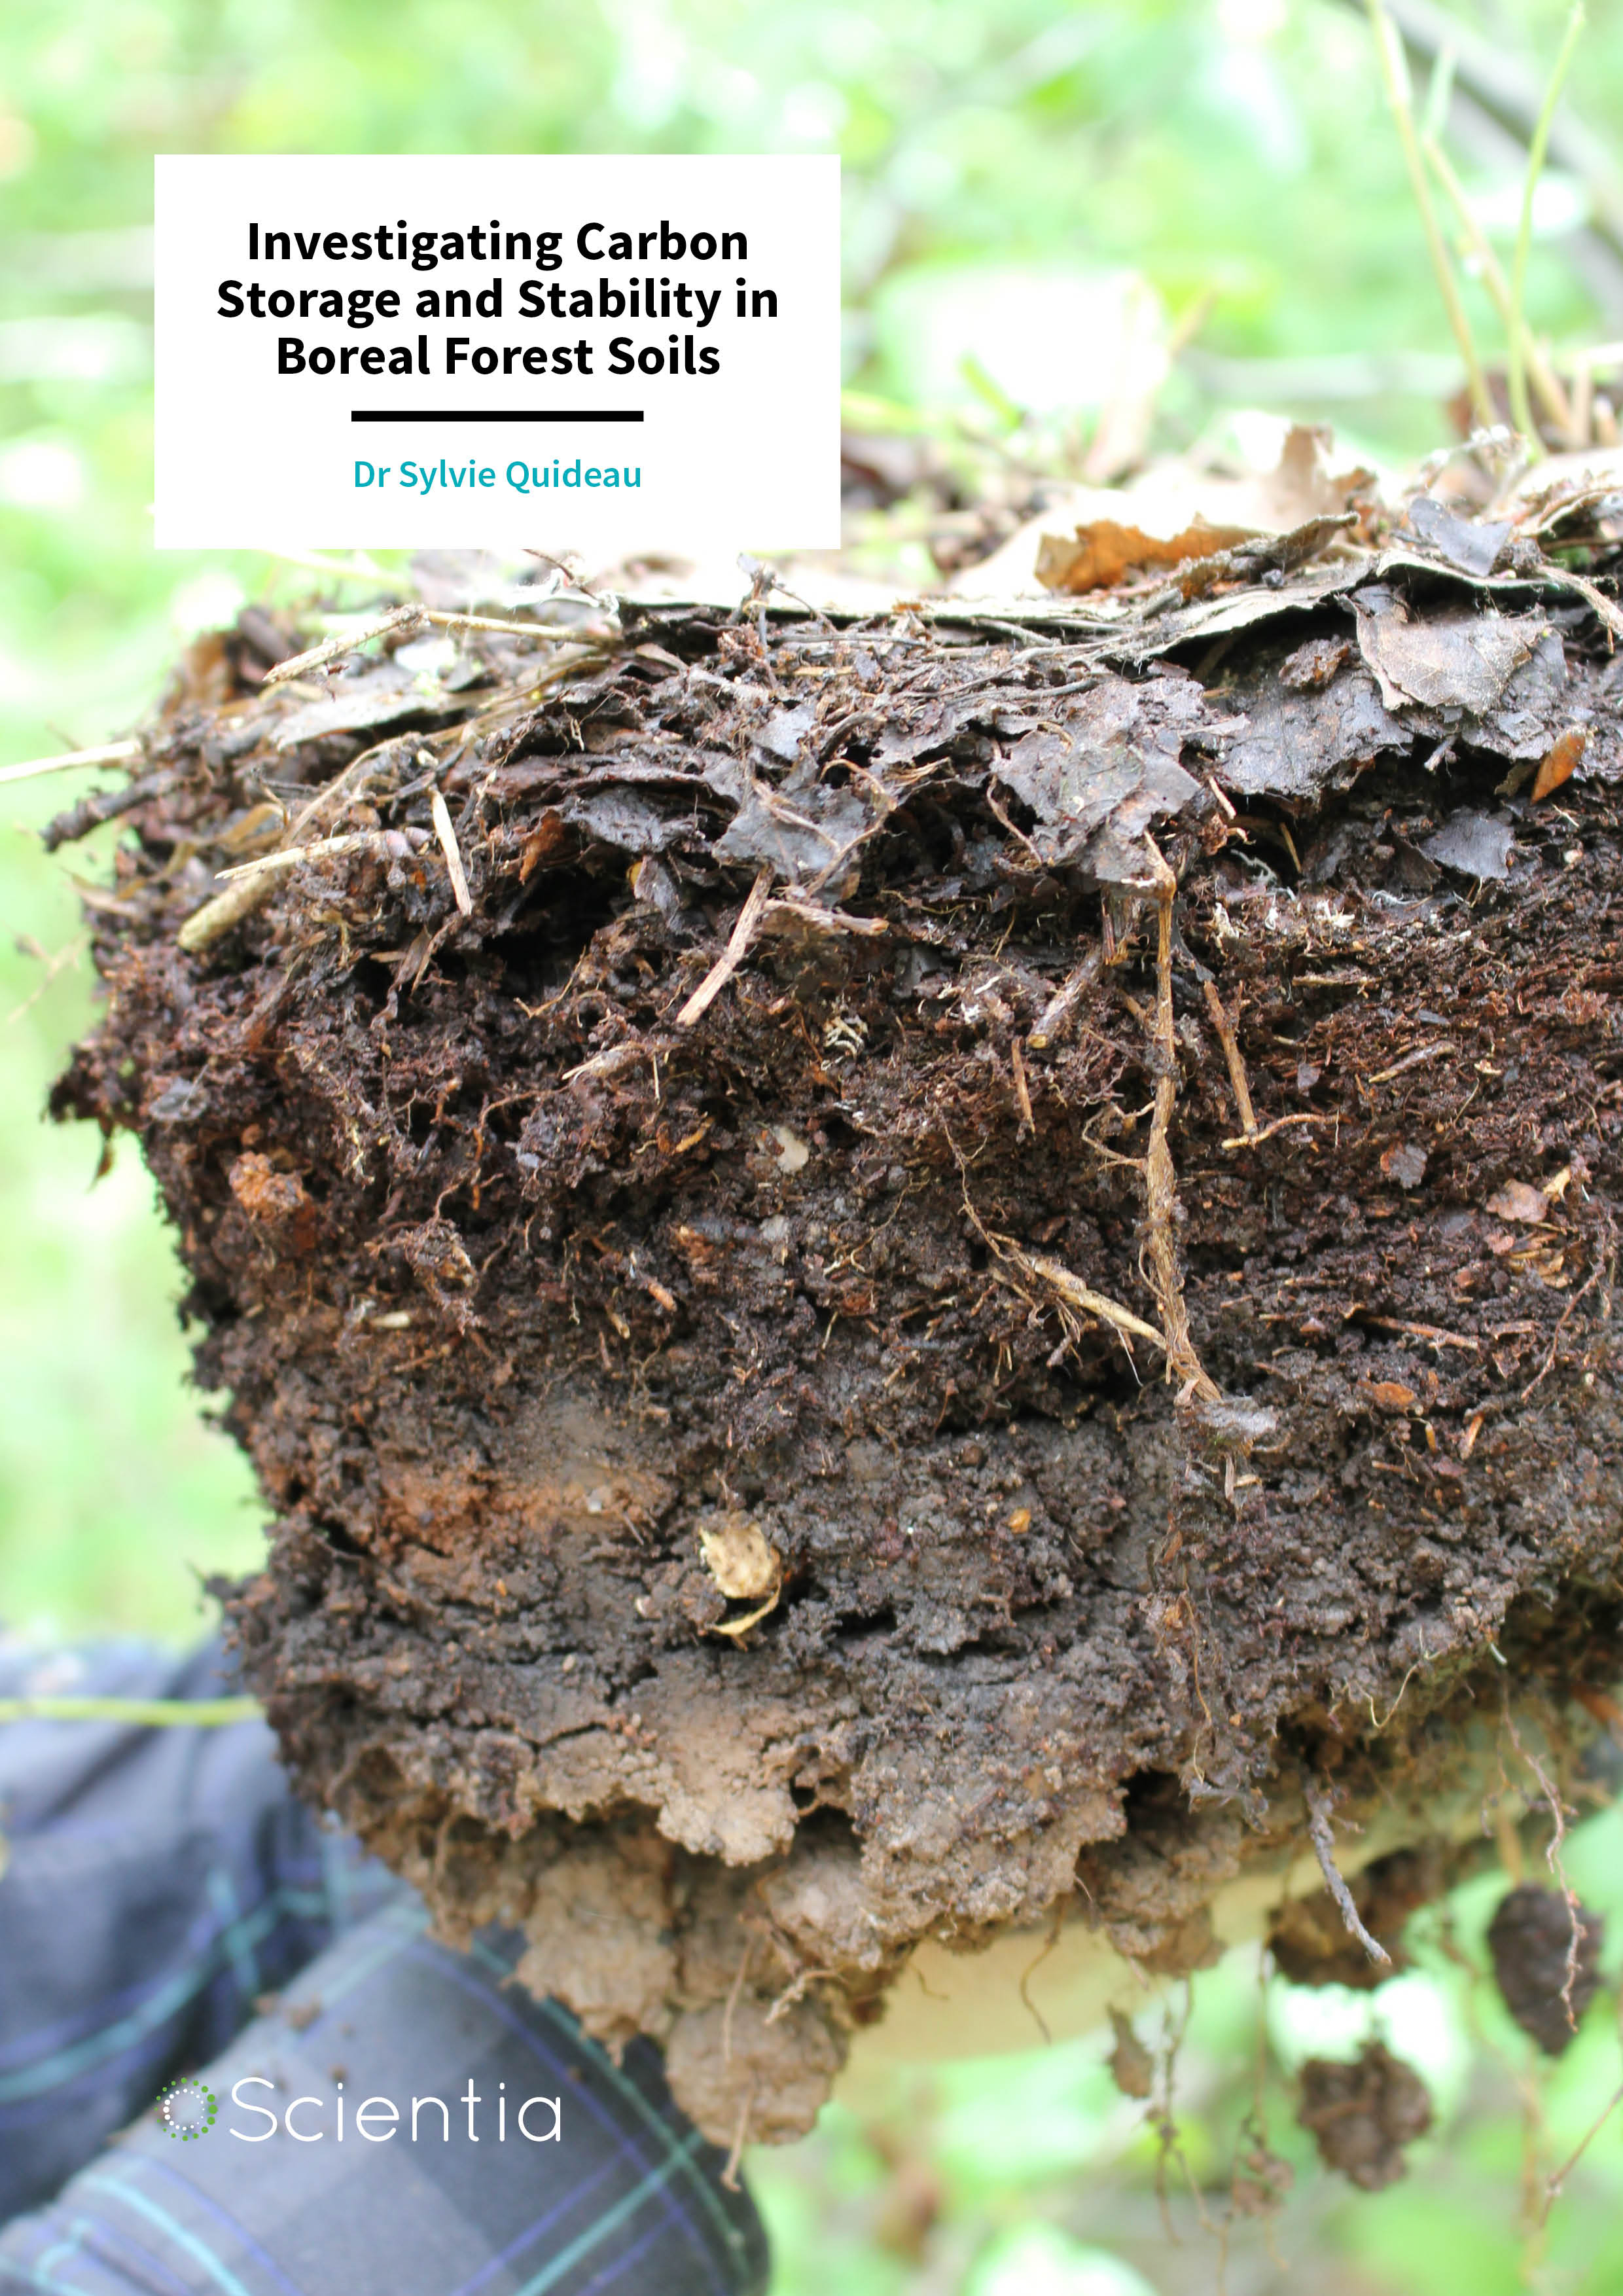 Dr Sylvie Quideau – Investigating Carbon Storage and Stability in Boreal Forest Soils